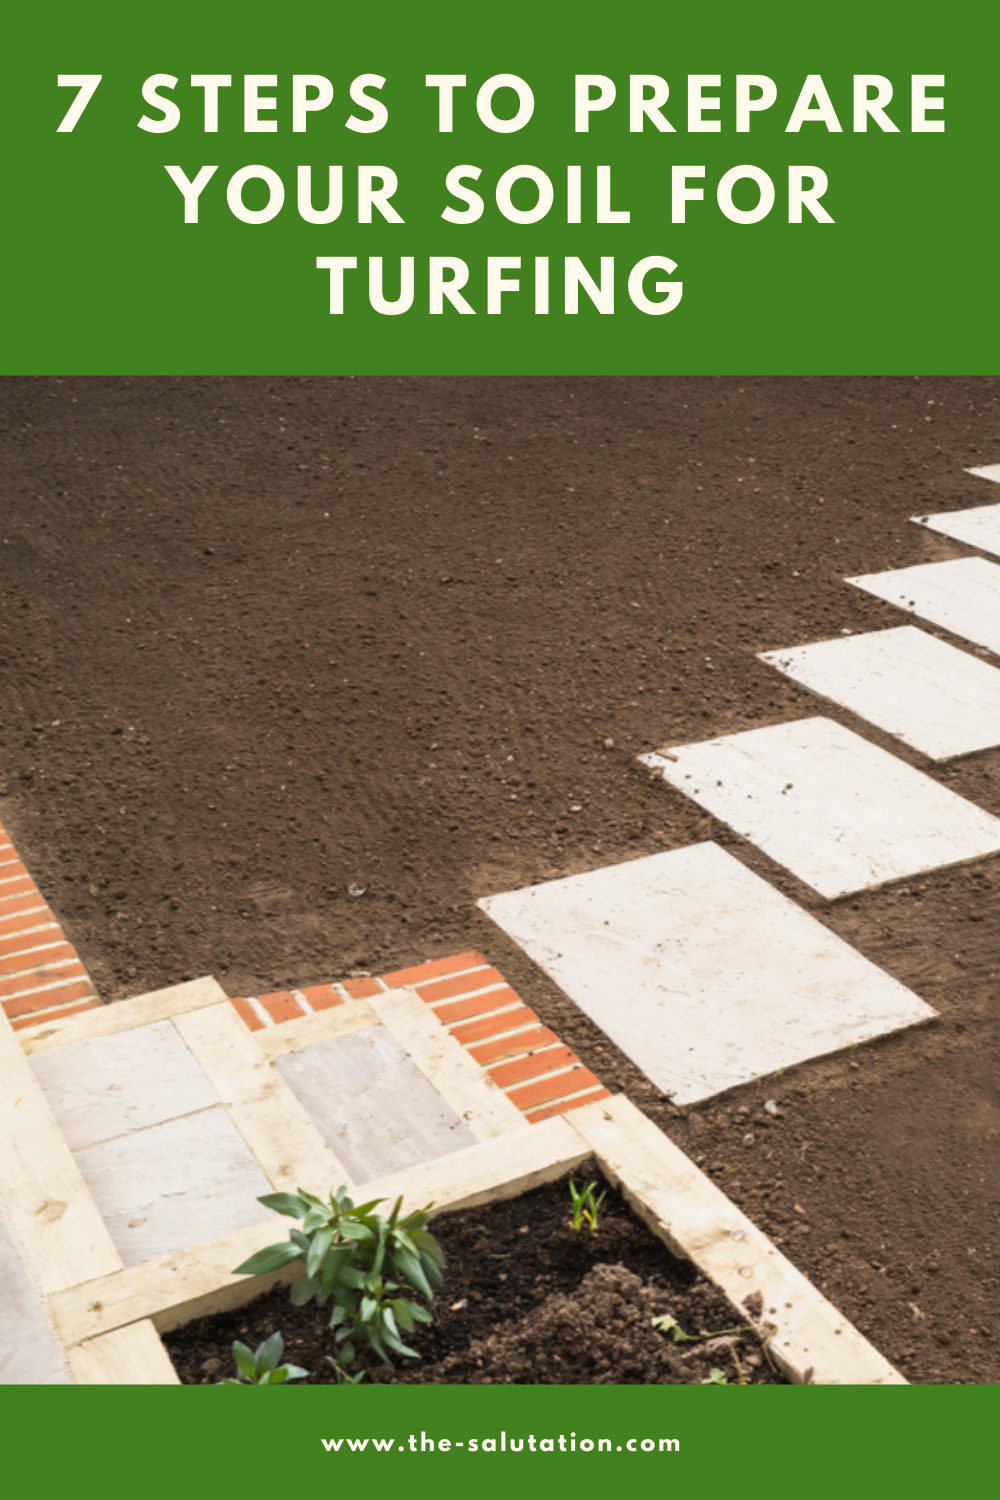 7 Steps to Prepare Your Soil for Turfing 1